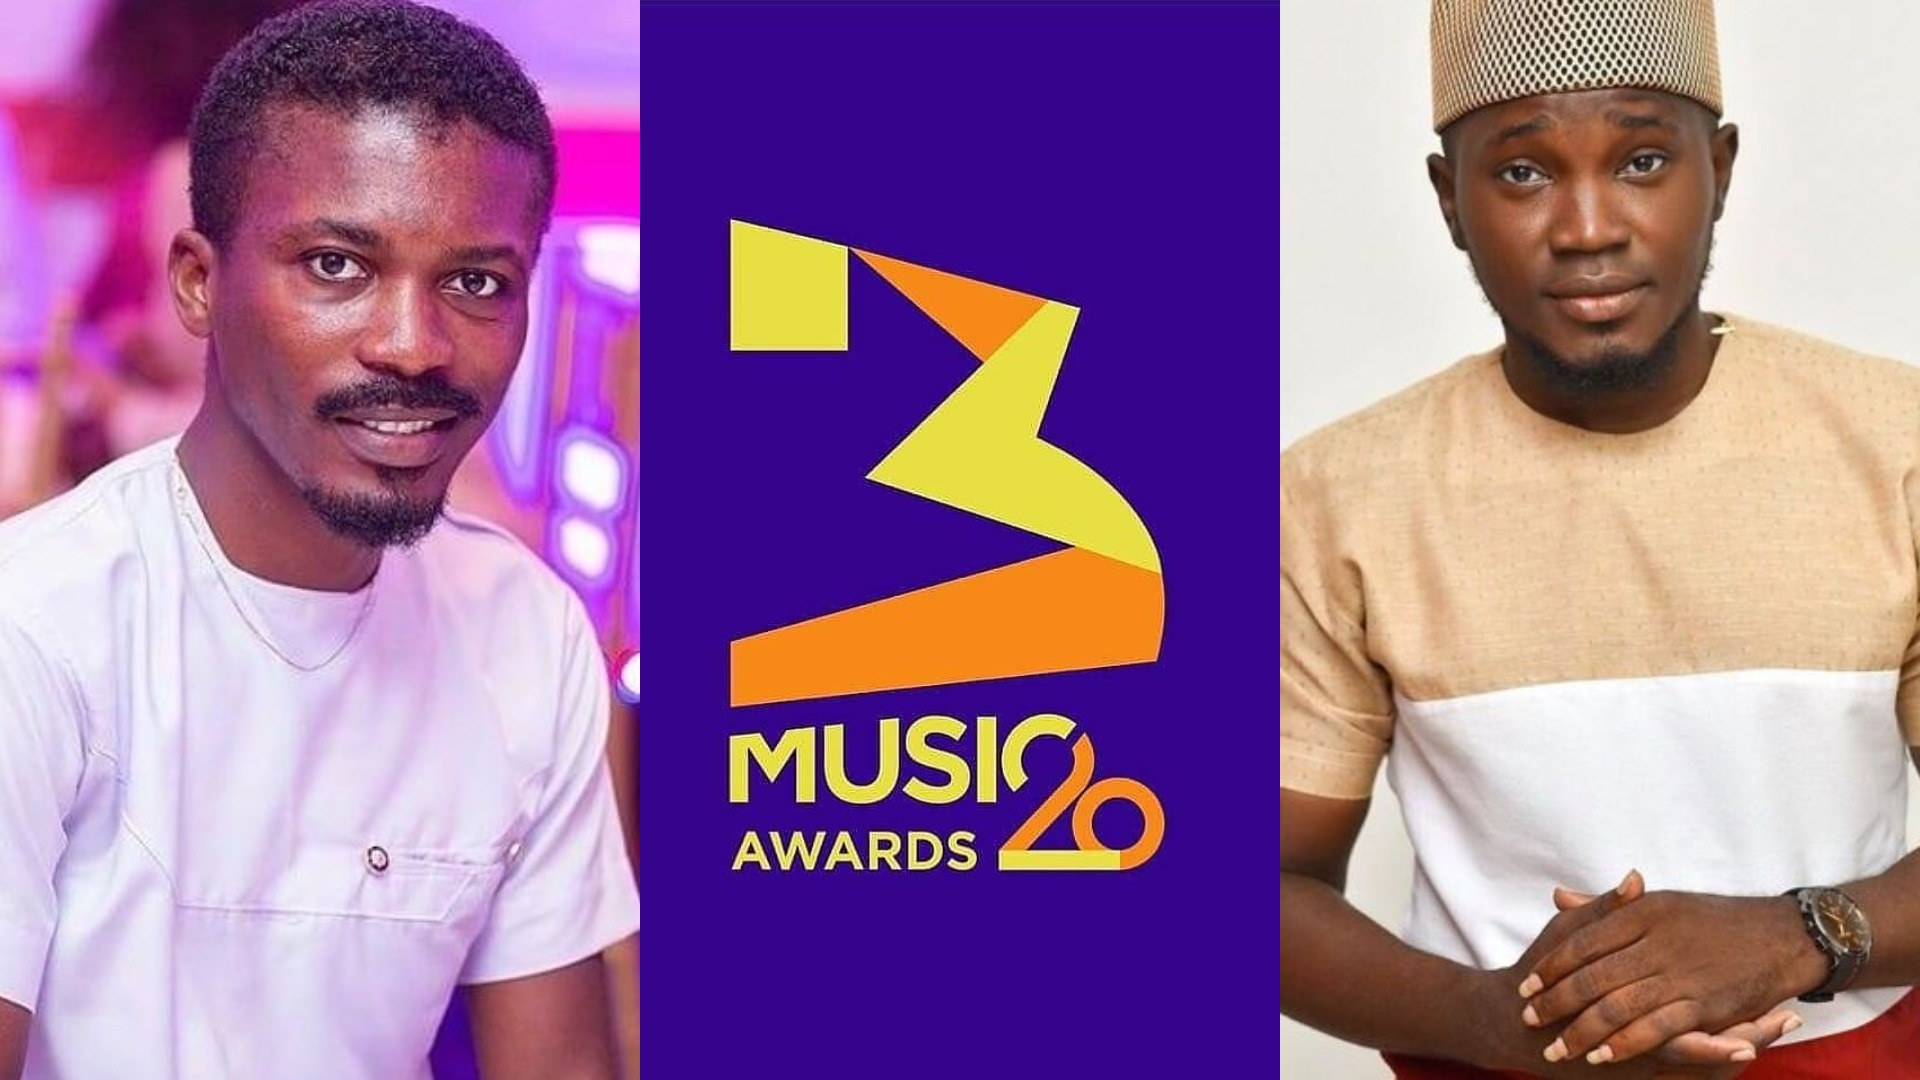 3MusicAwards20: OB Amponsah And Clemento Suarez Demonstrated They Were The Right Spices In The Flavour Room